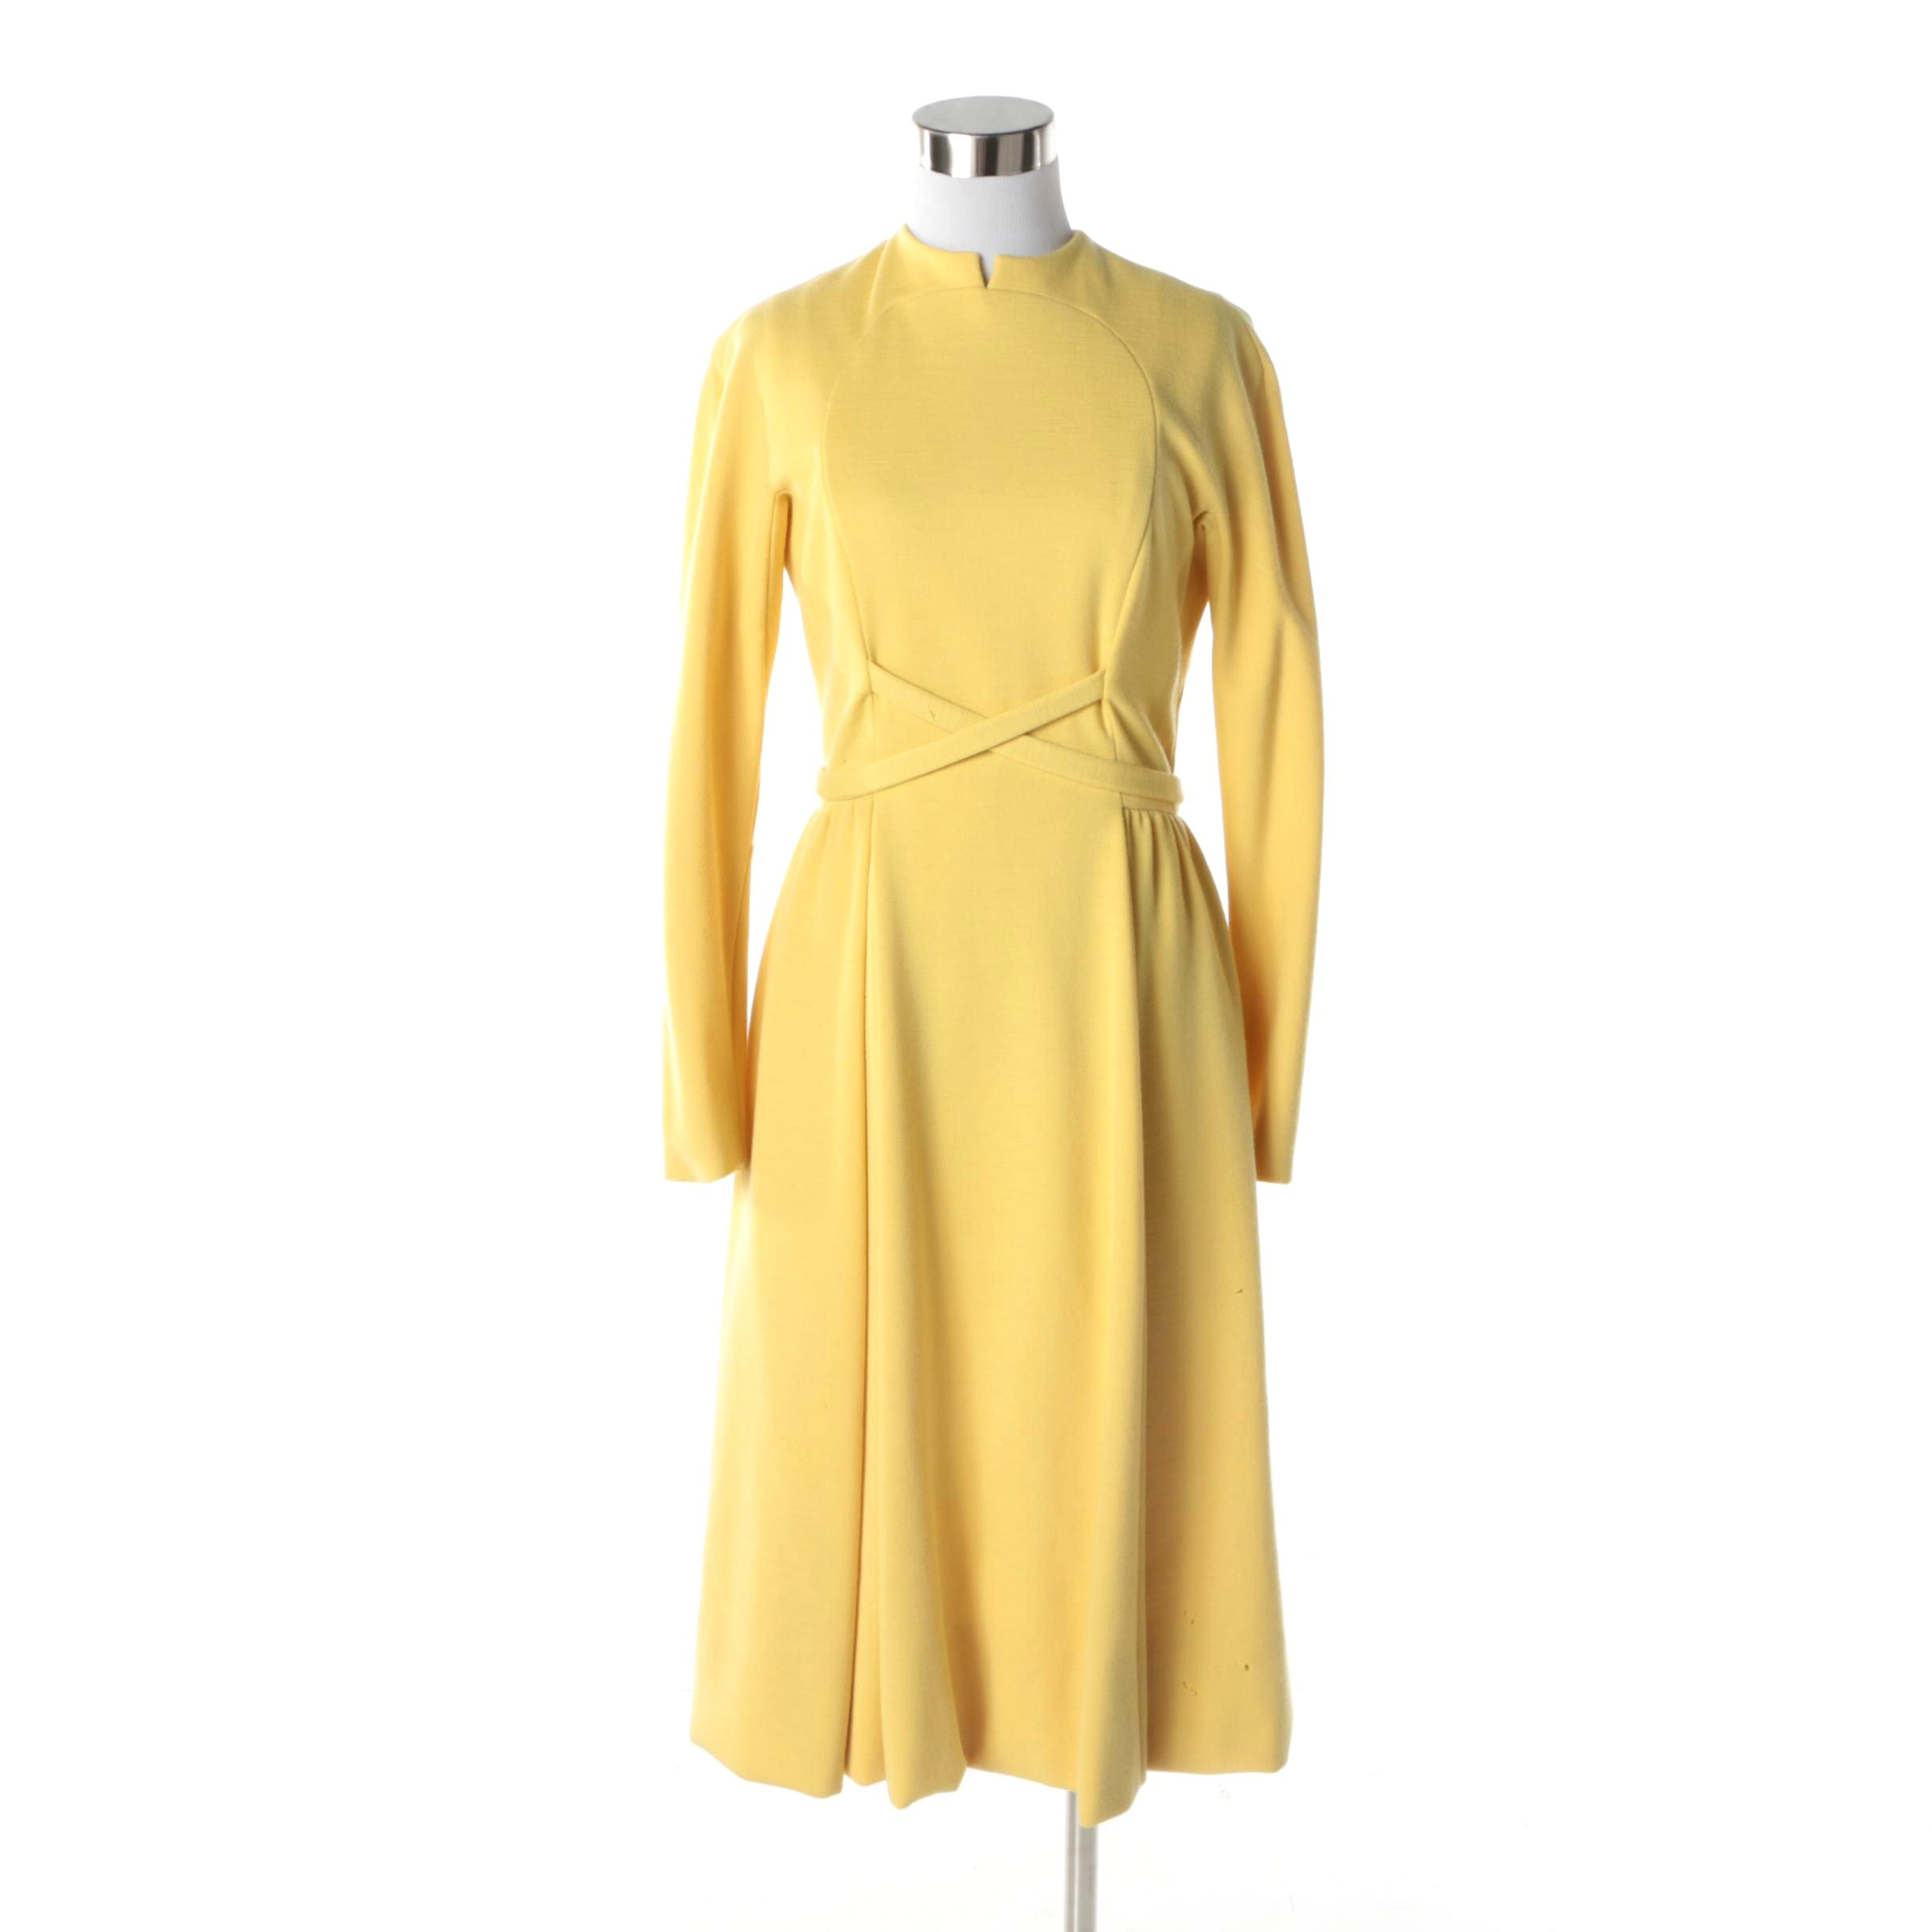 Women's Circa 1960s Vintage Geoffrey Beene Sunshine Yellow Mod Midi Dress